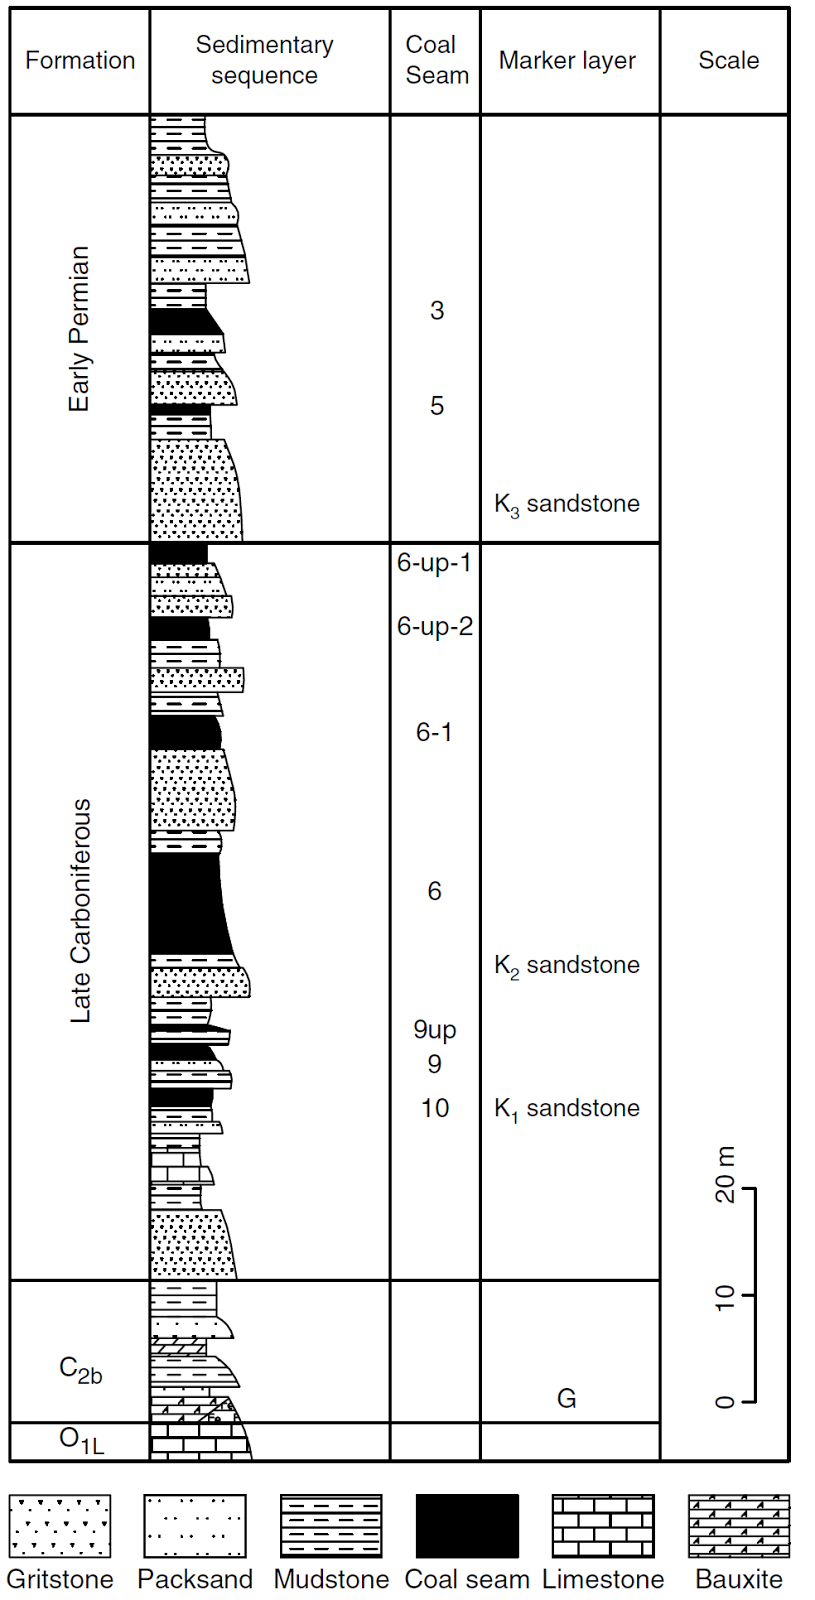 Stratigraphic column of the Guanbanwusu Mine, Jungar Coalfield.